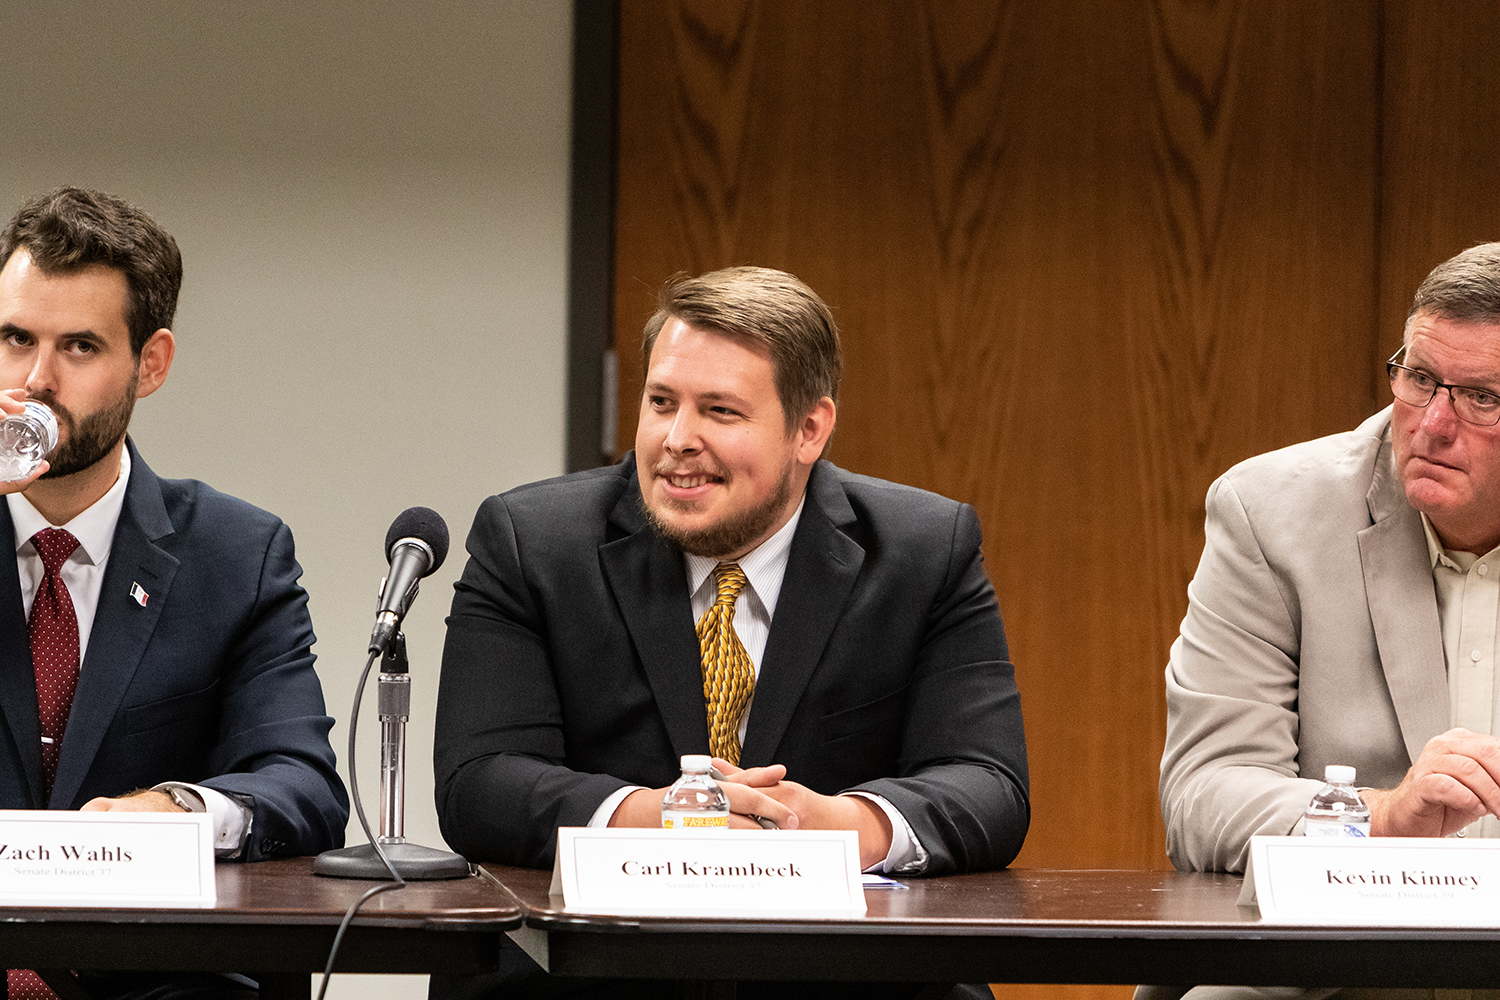 Carl Krambeck, the Libertarian Candidate for Iowa State Senate District 37, participates in a public forum at the Coralville Public Library on Monday, Sept. 10, 2018.